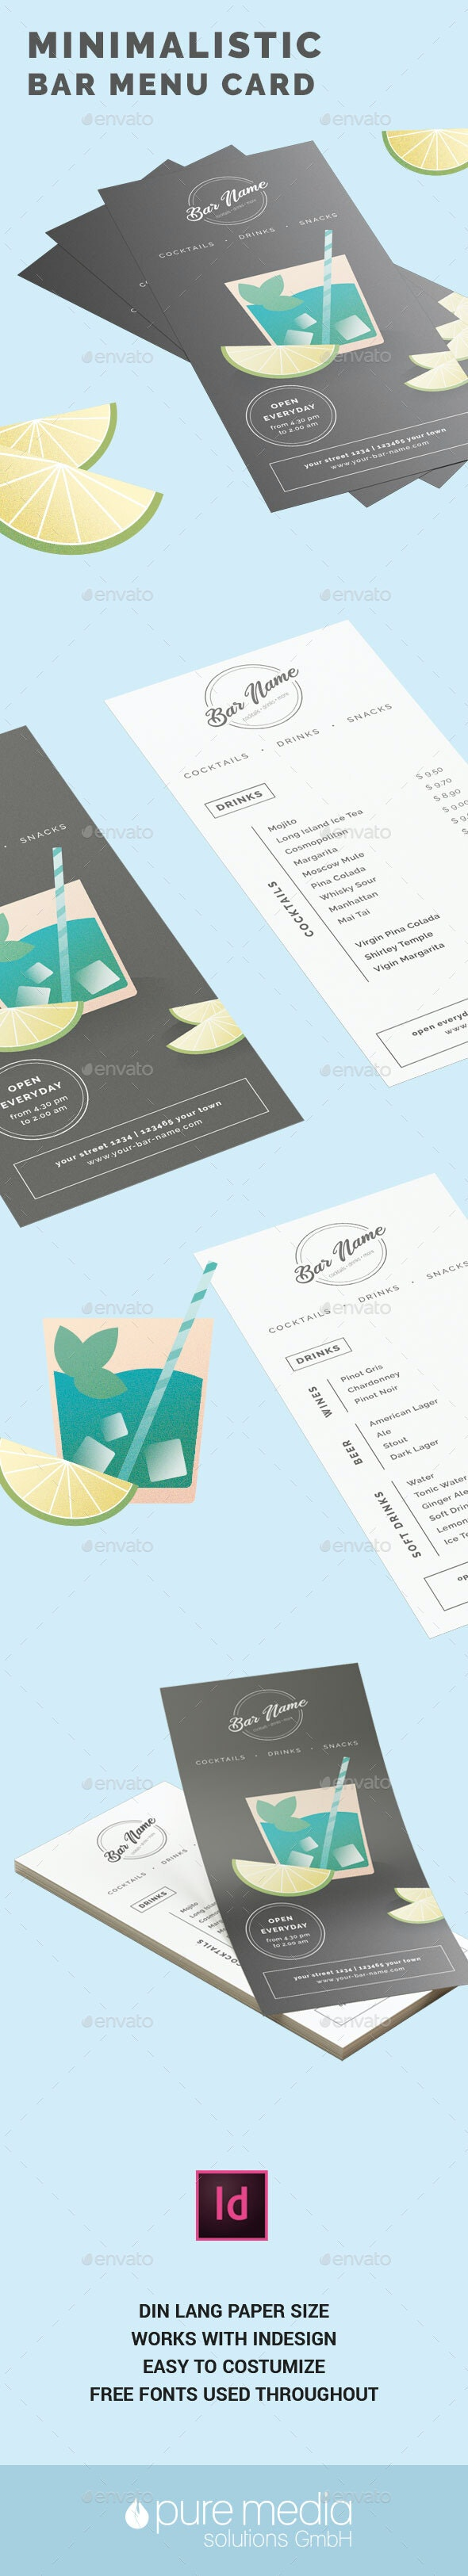 Minimalistic Bar Menu Card - Food Menus Print Templates